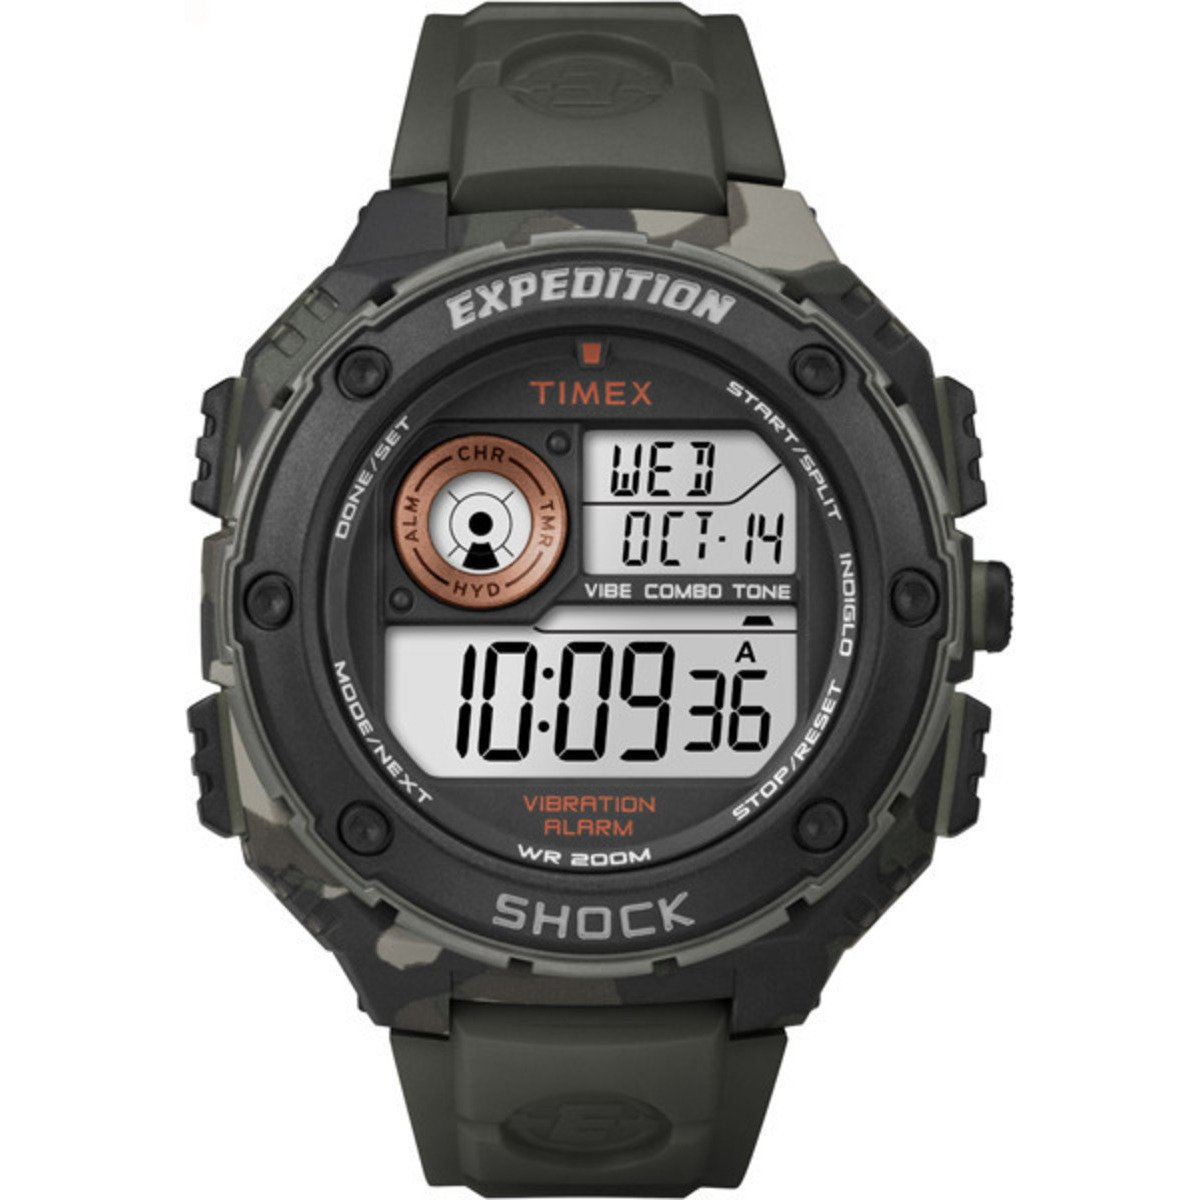 b386bb56206a Amazon.com  Timex Expedition Vibe Shock Watch - Camo  Health   Personal Care